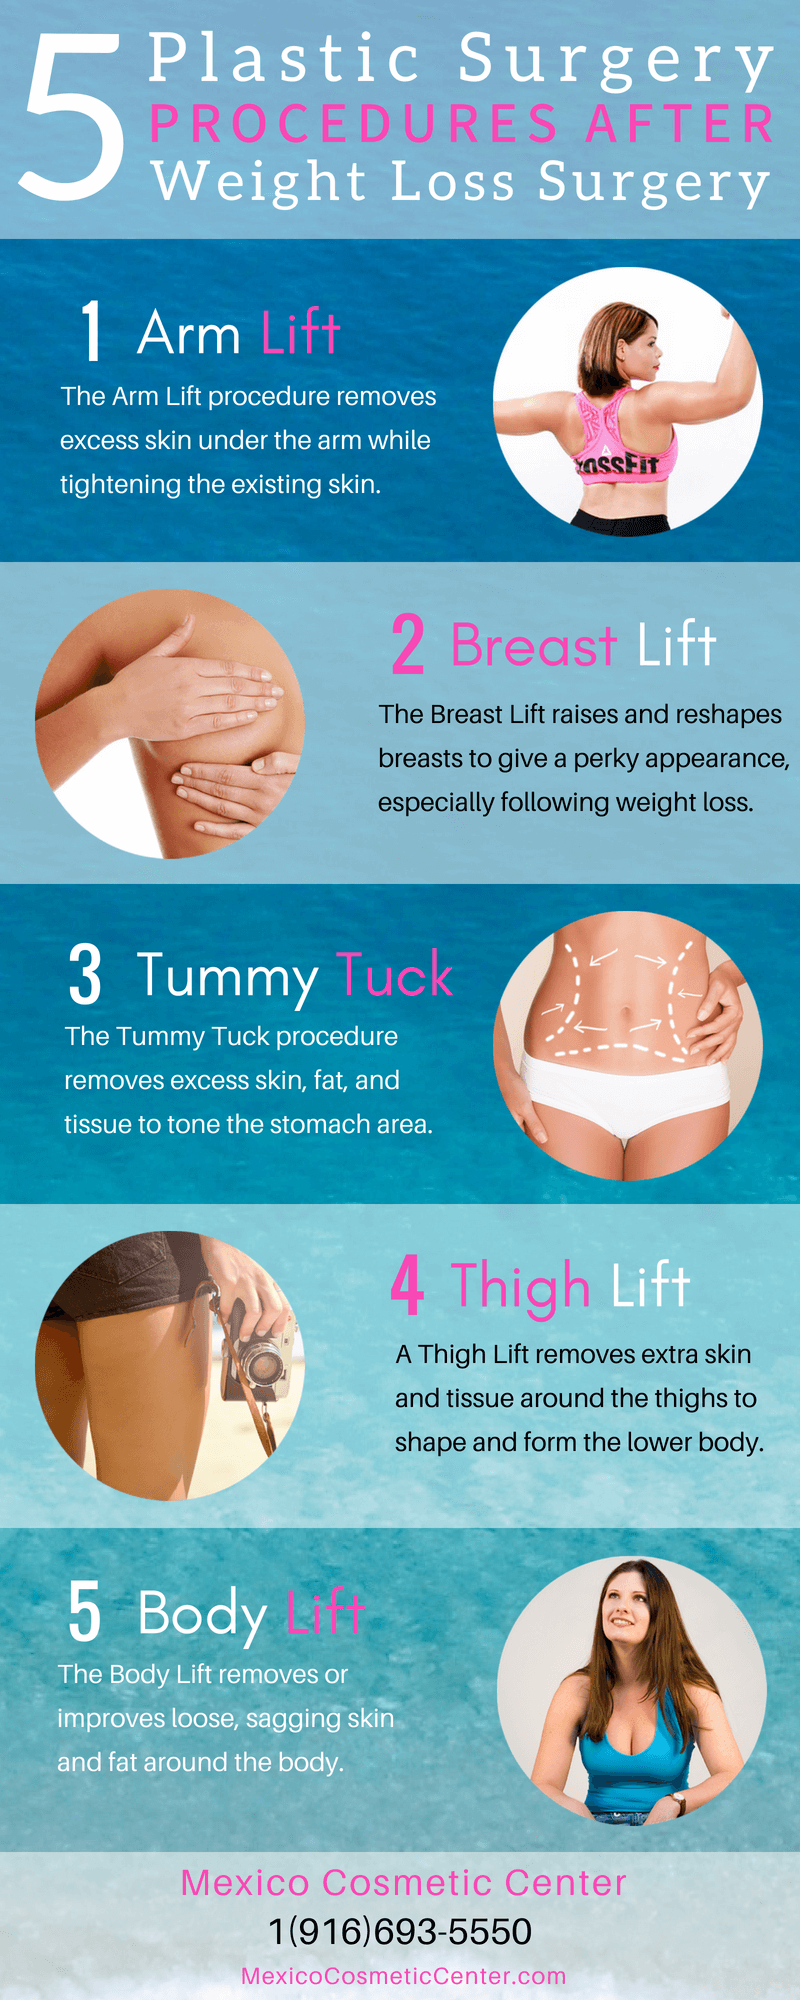 Types Of Plastic Surgery After Weight Loss | Healthy HesongBai